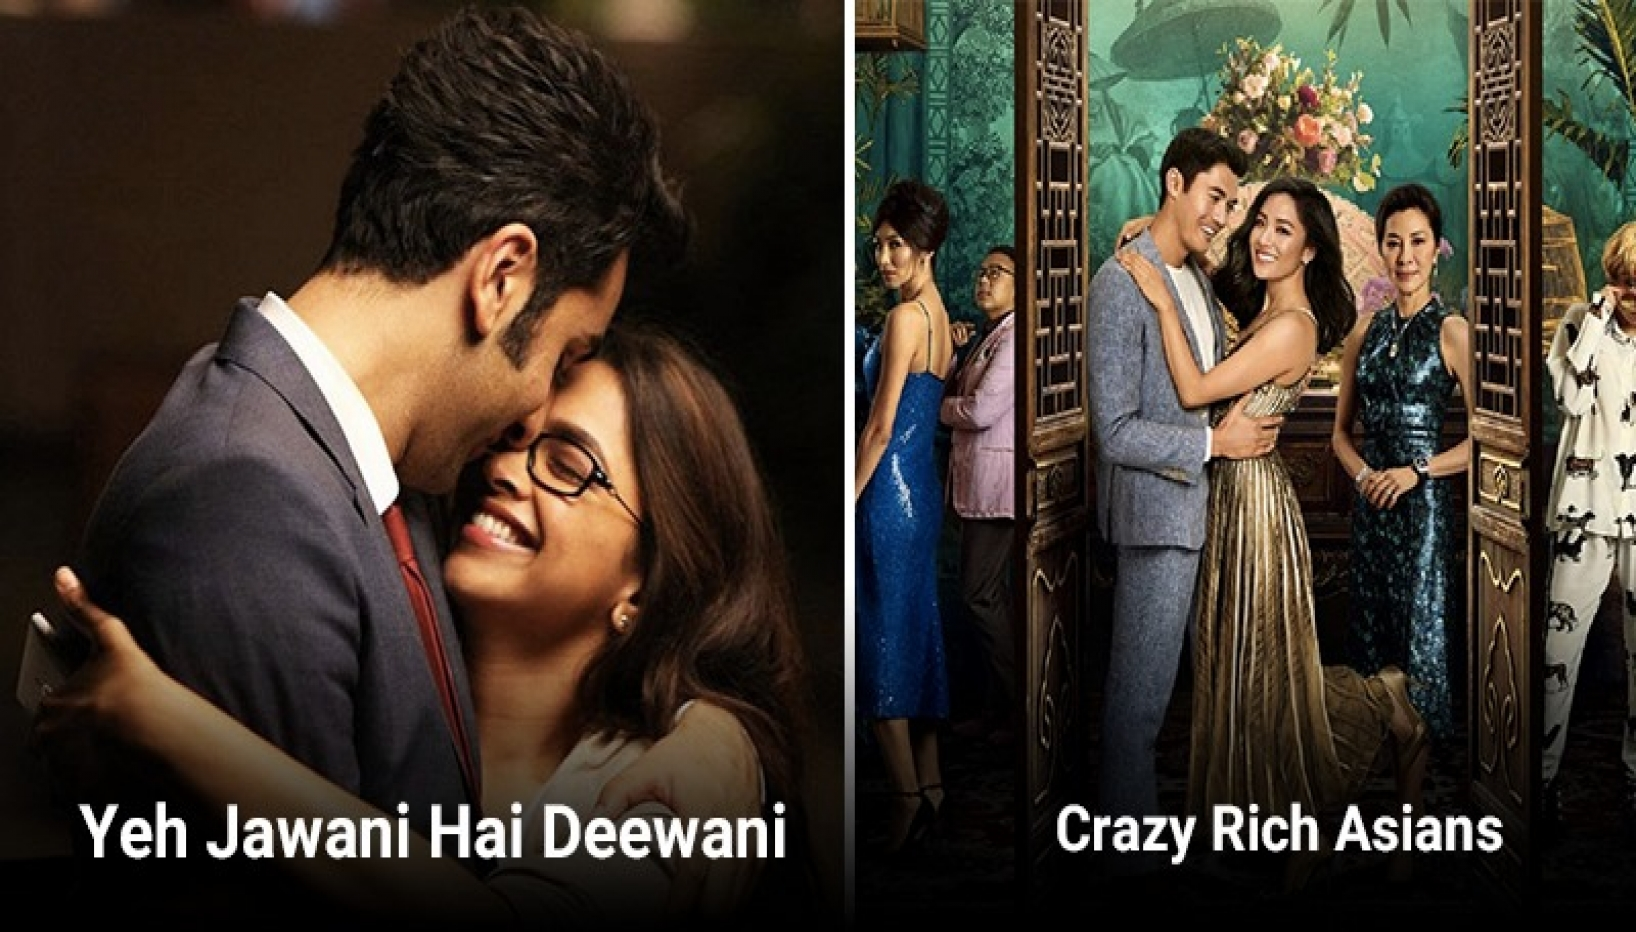 Pictured: Posters for Crazy Rich Asians and Yeh Jawaani Hai Deewani